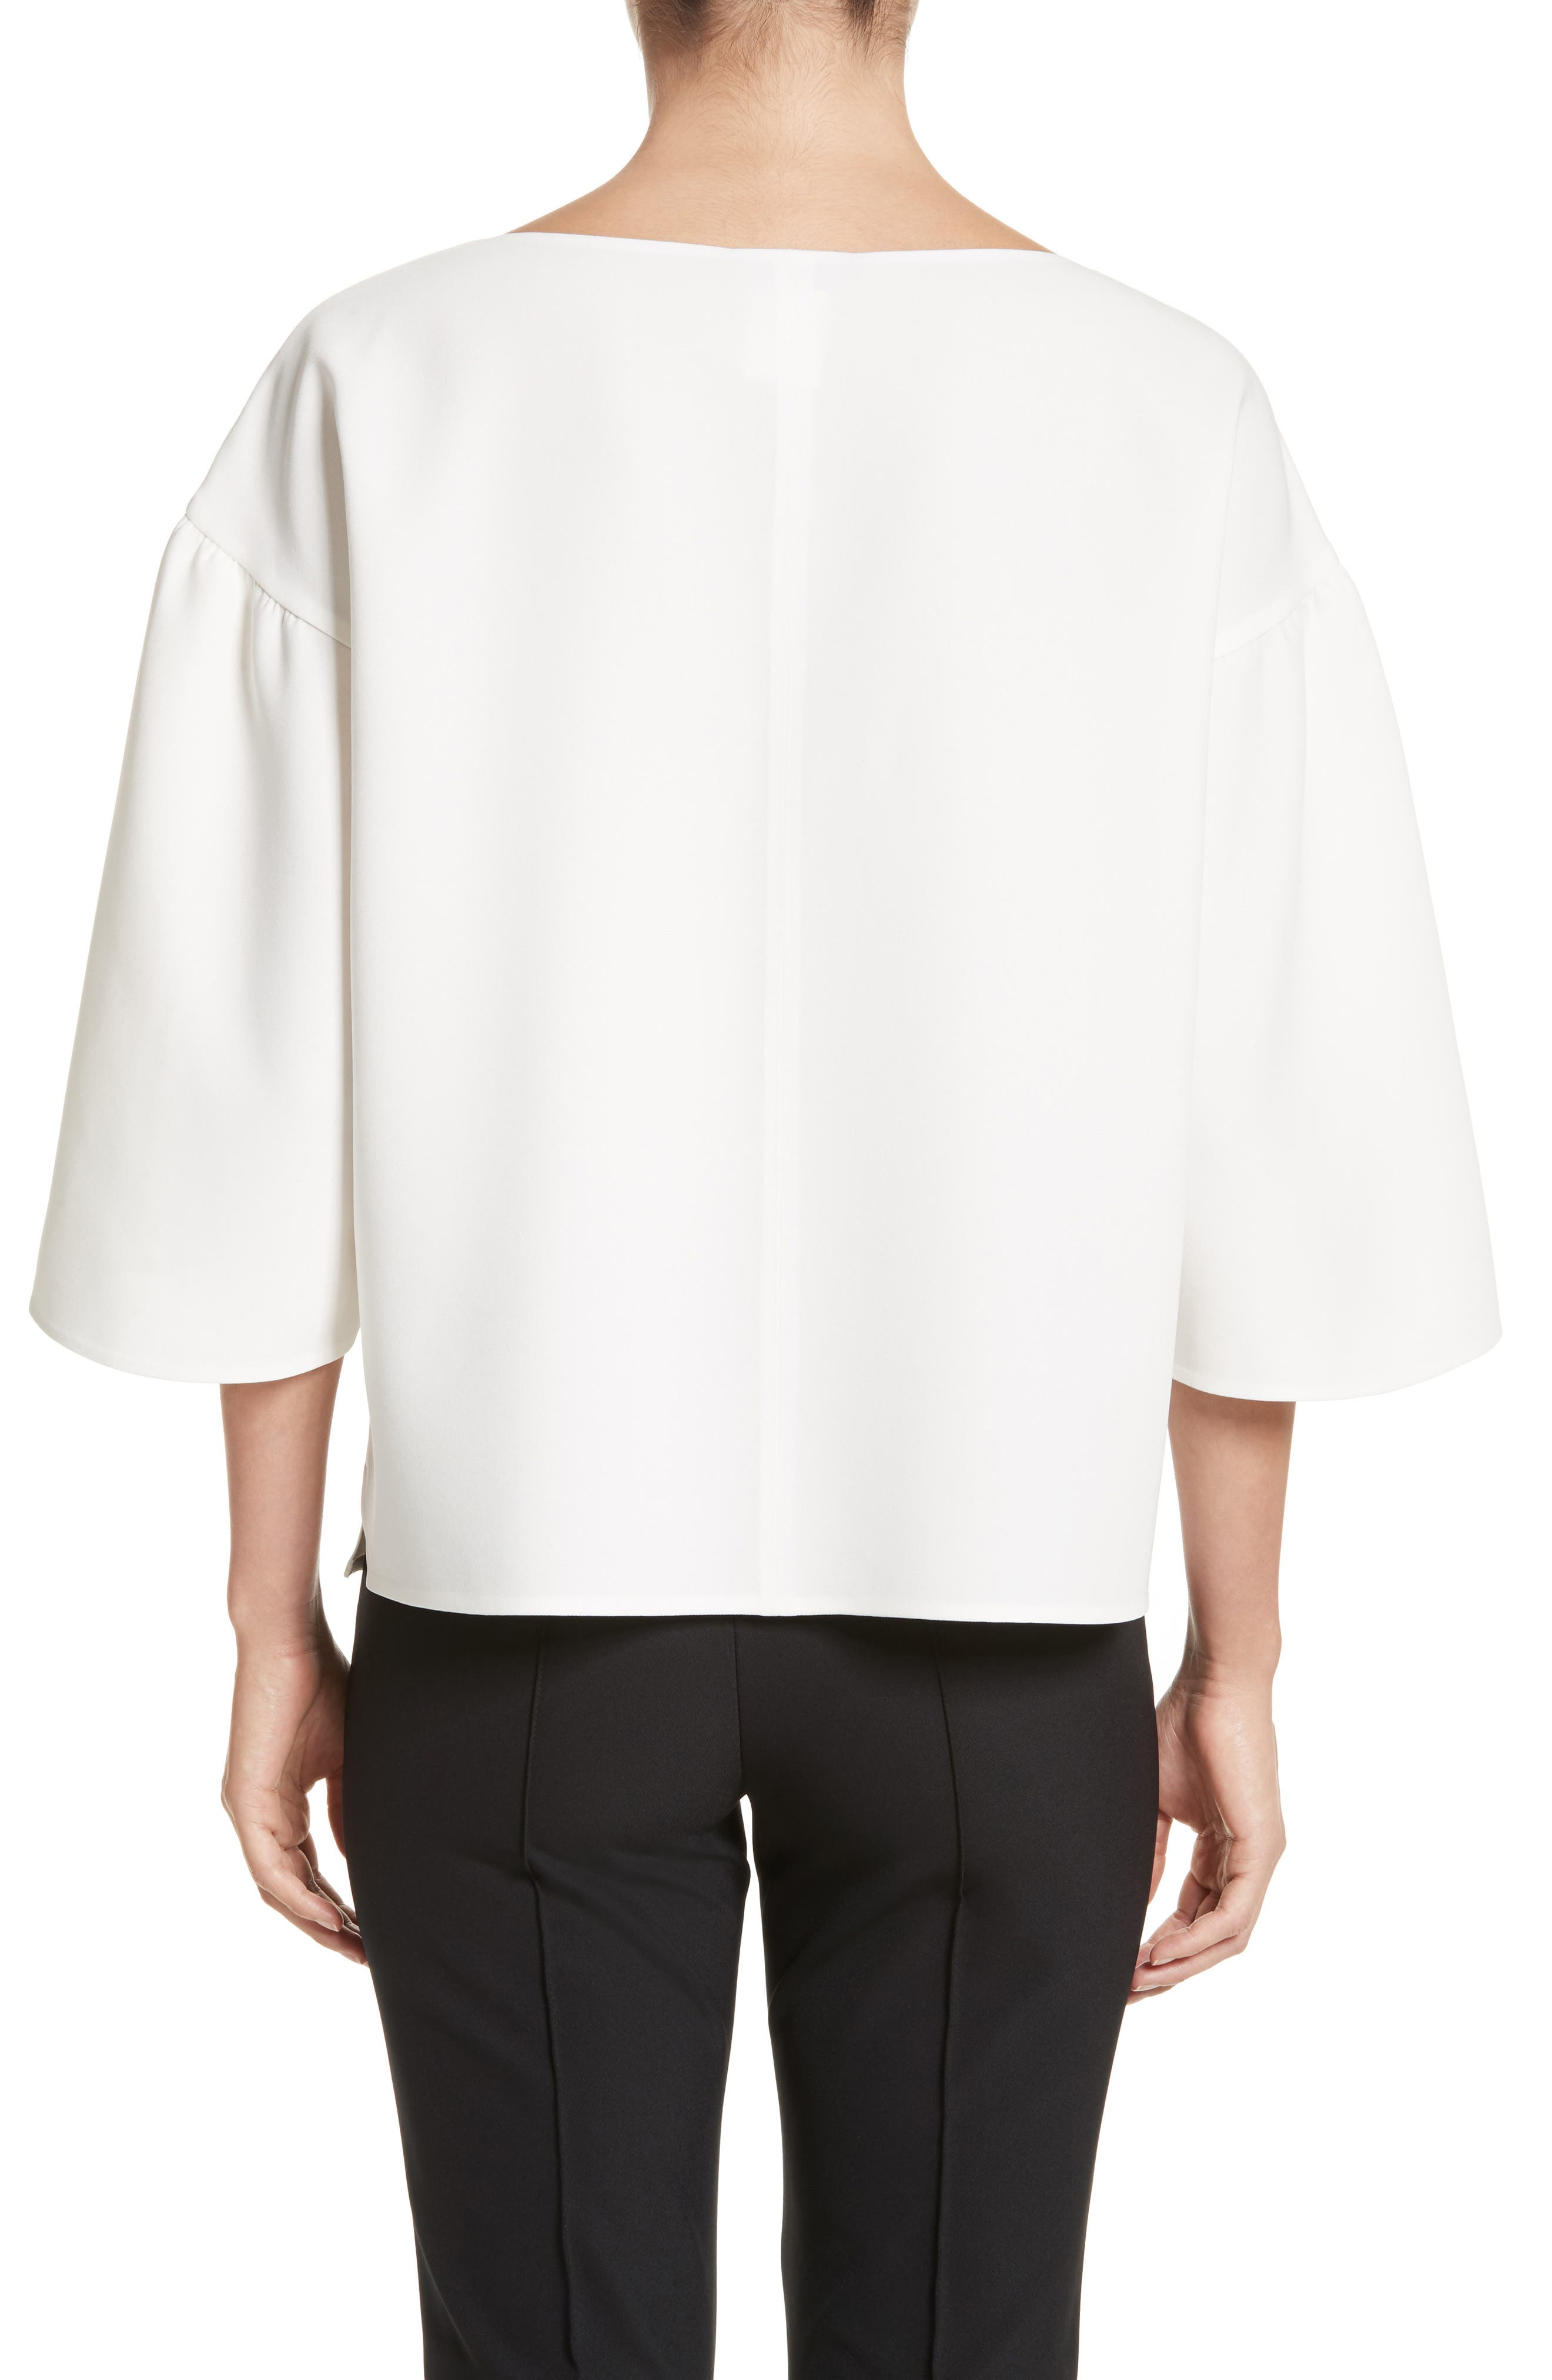 Gwendolyn Blouse,                             Alternate thumbnail 2, color,                             Cloud